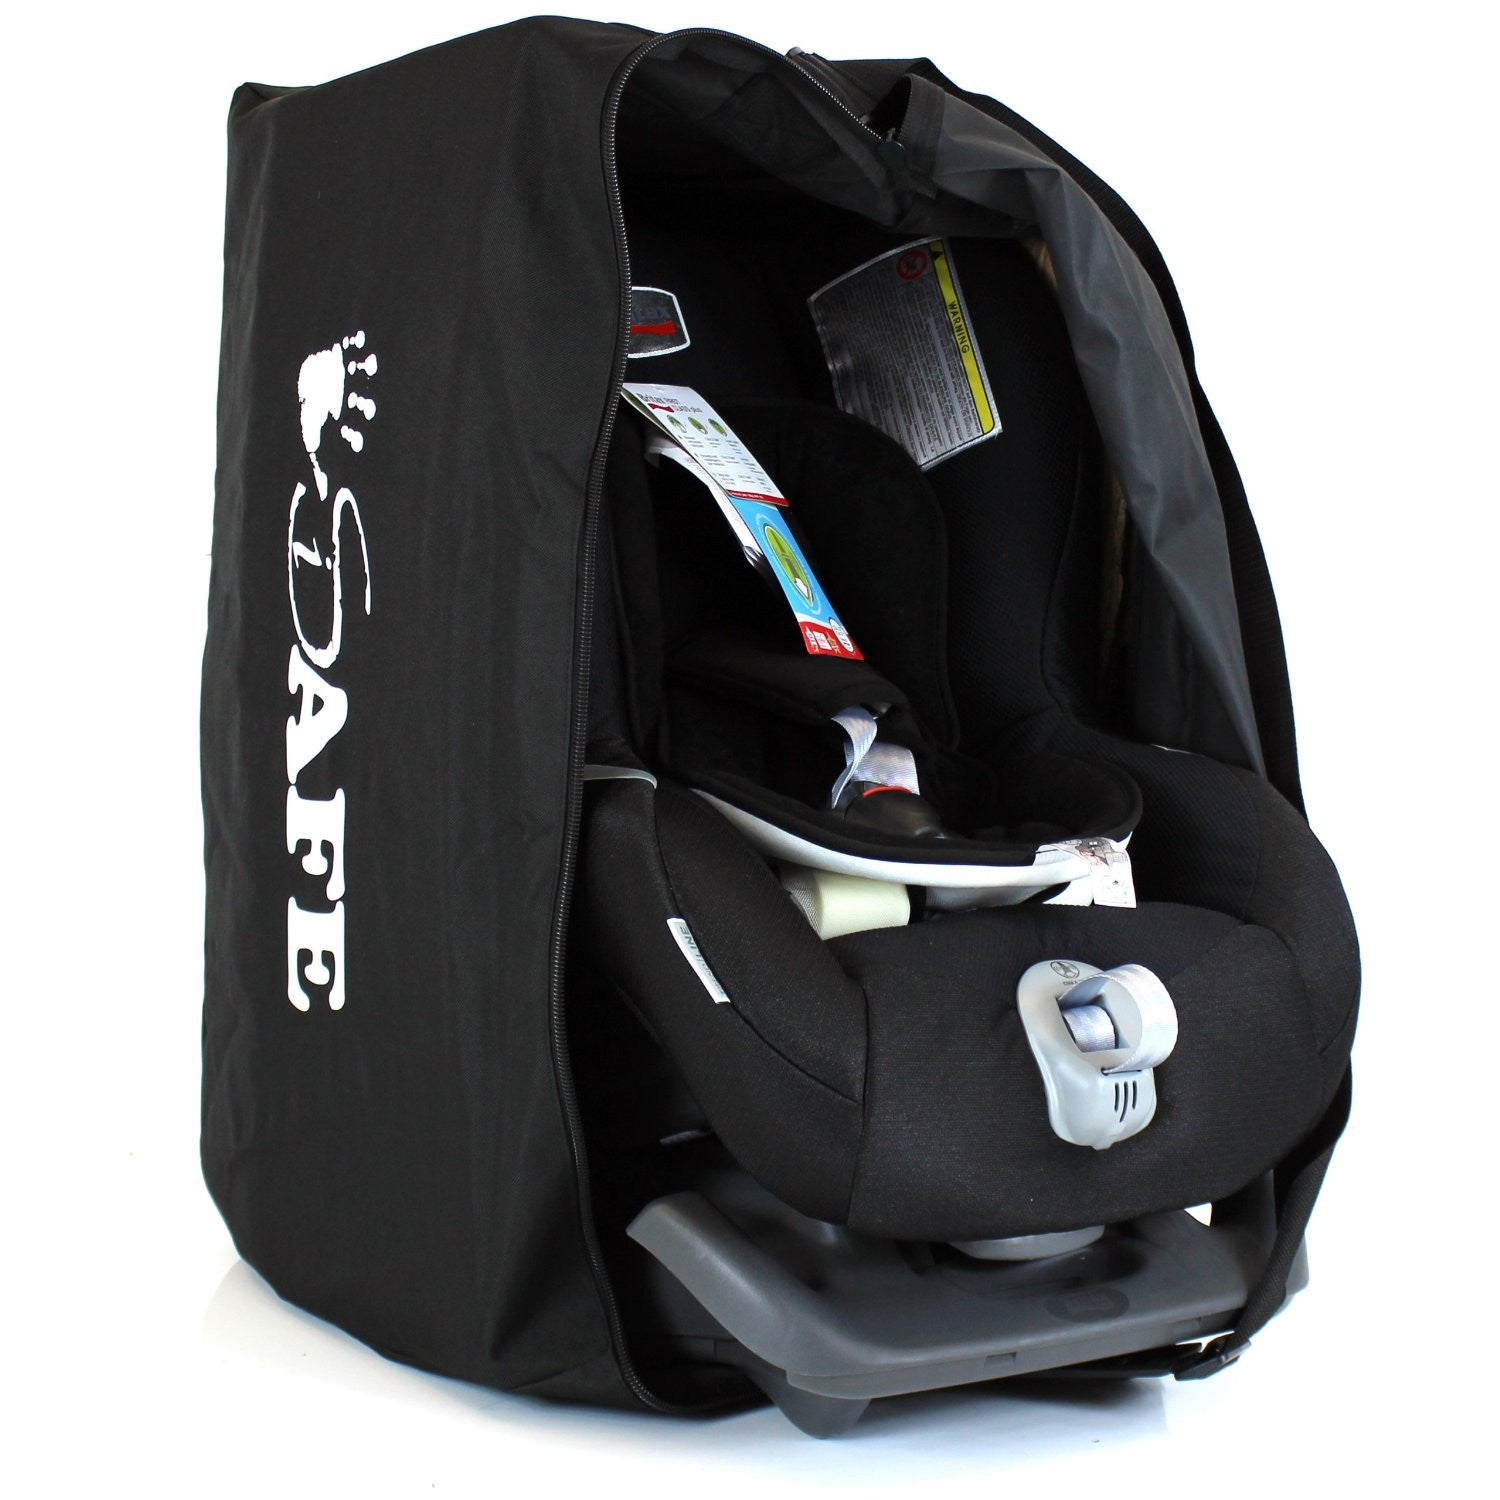 ISafe Universal Carseat Travel Storage Bag For Maxi Cosi Familyfix Pearl Car Seat